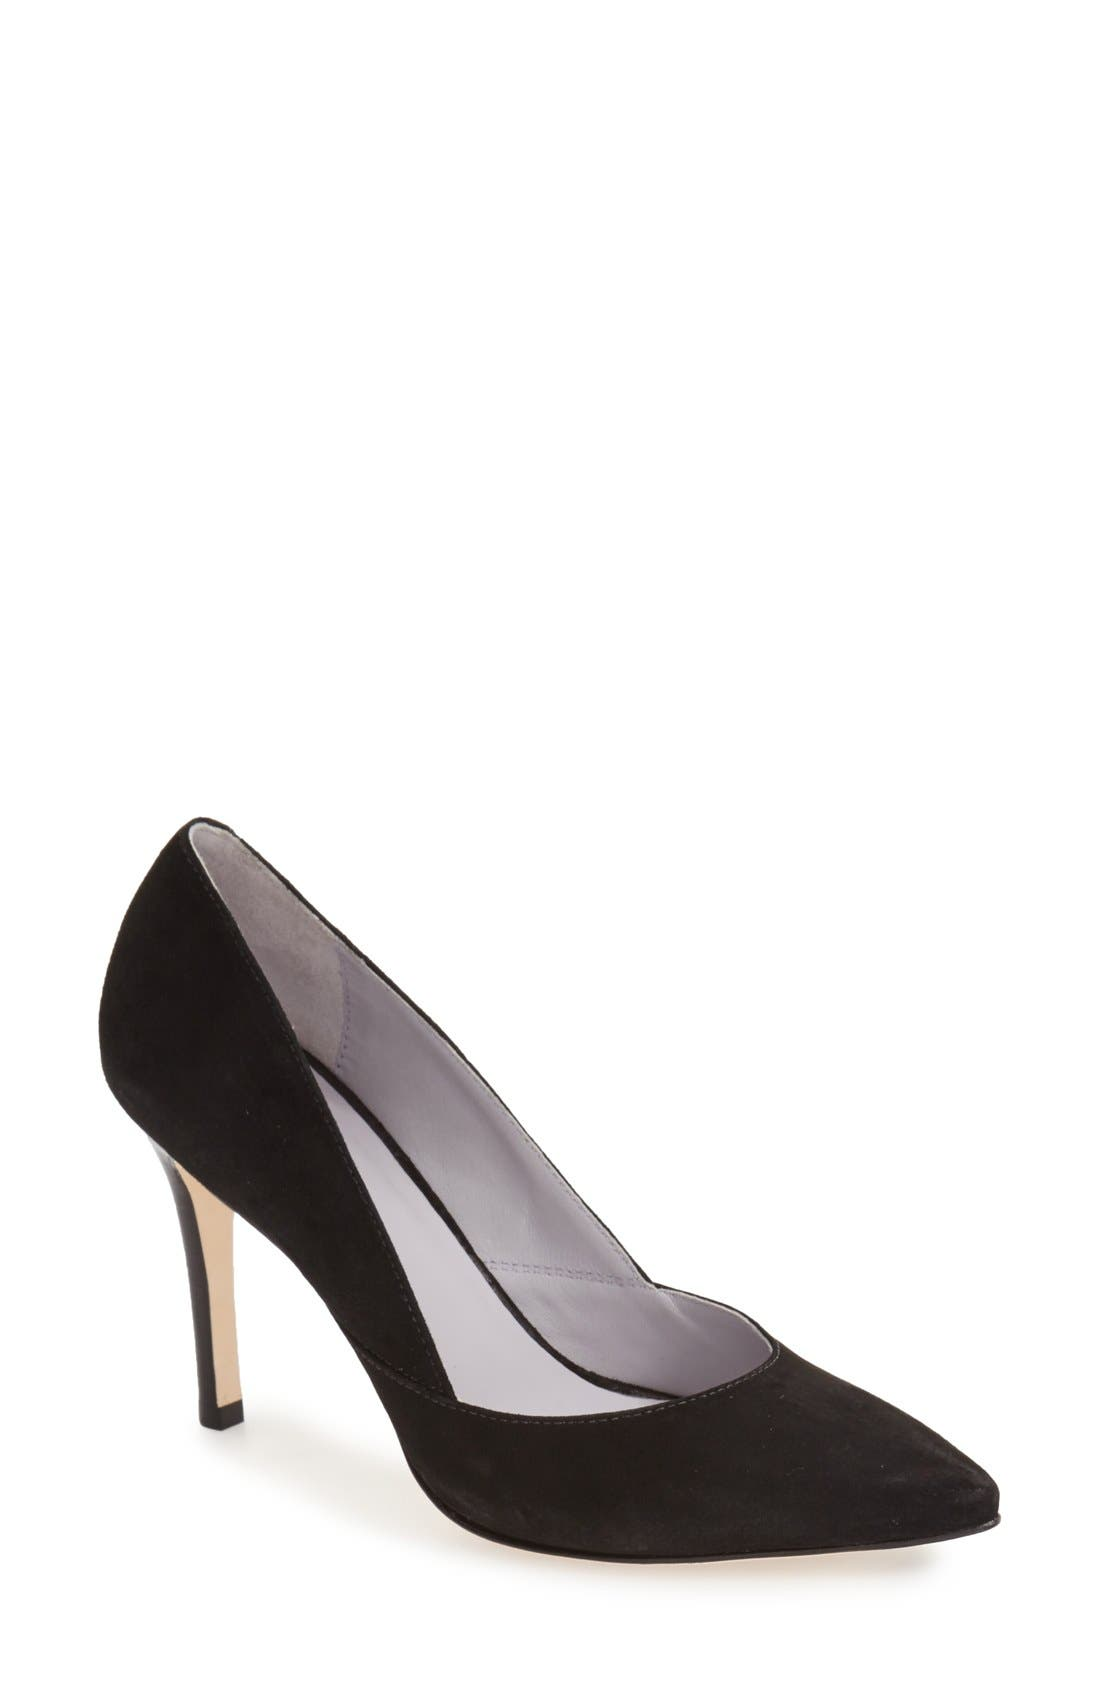 'Vanessa' Pointy Toe Leather Pump,                             Main thumbnail 1, color,